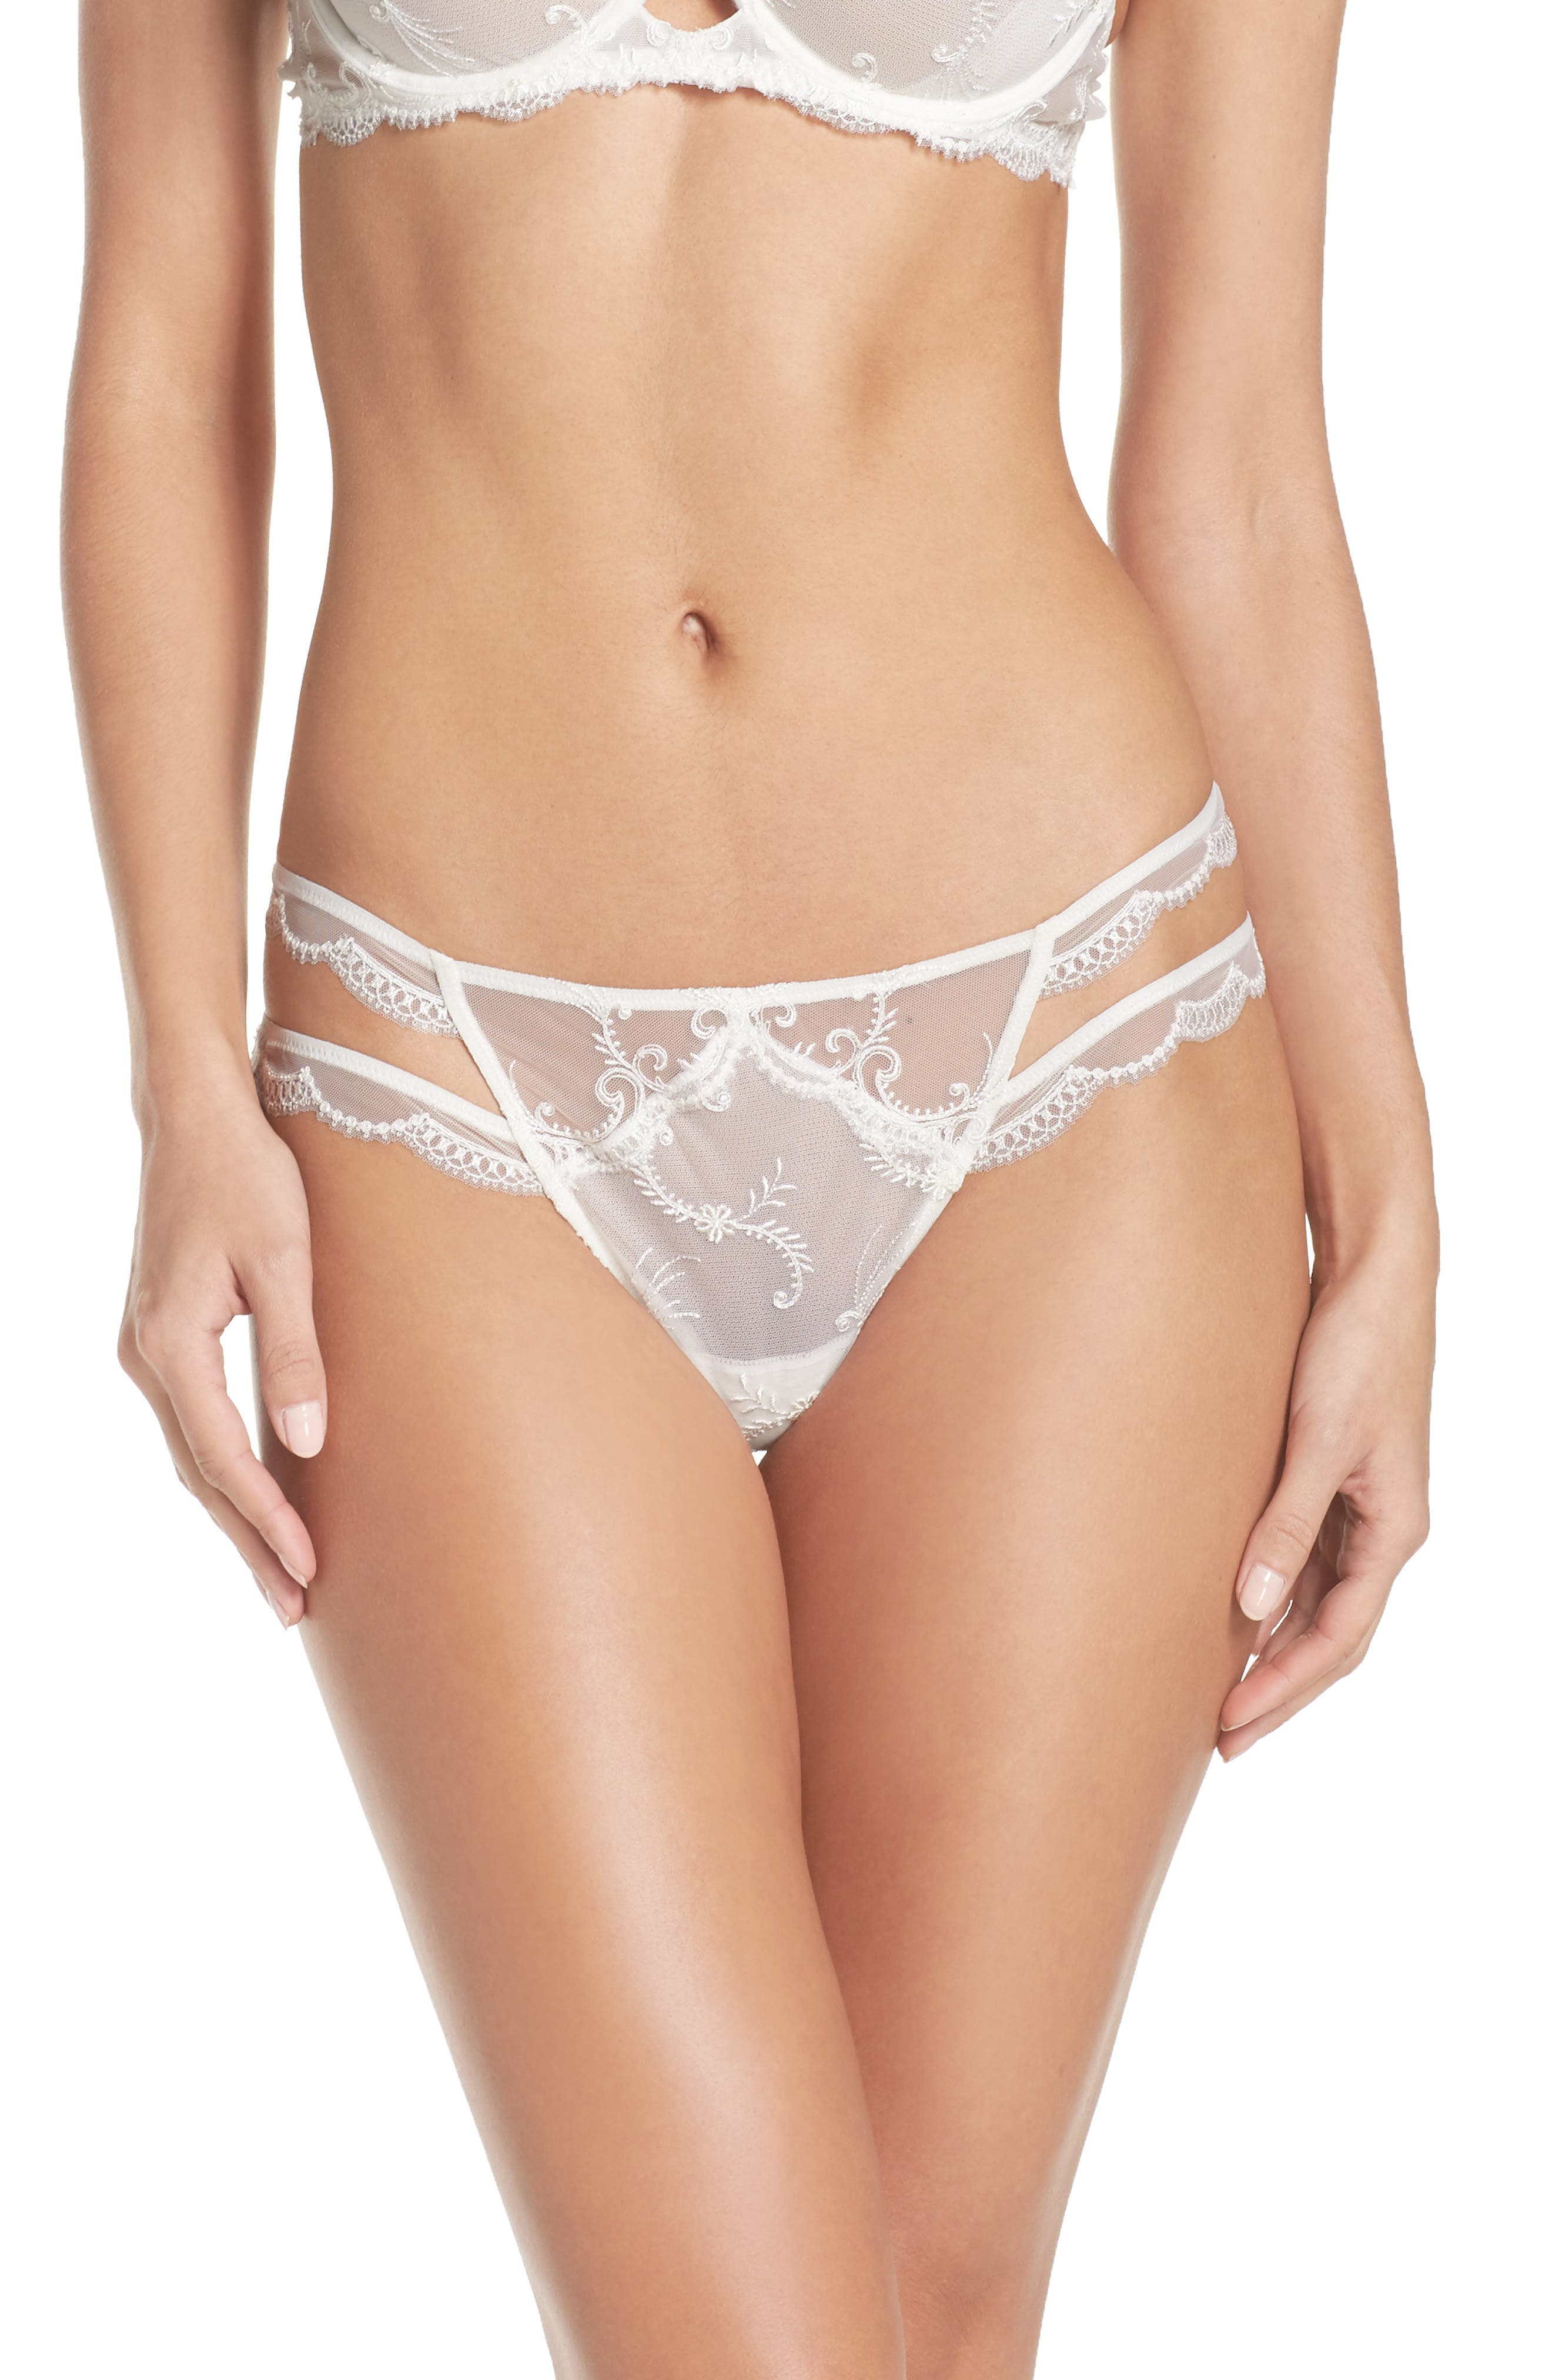 Main Image - Epure by Lise Charmel Orchid Paradis Thong